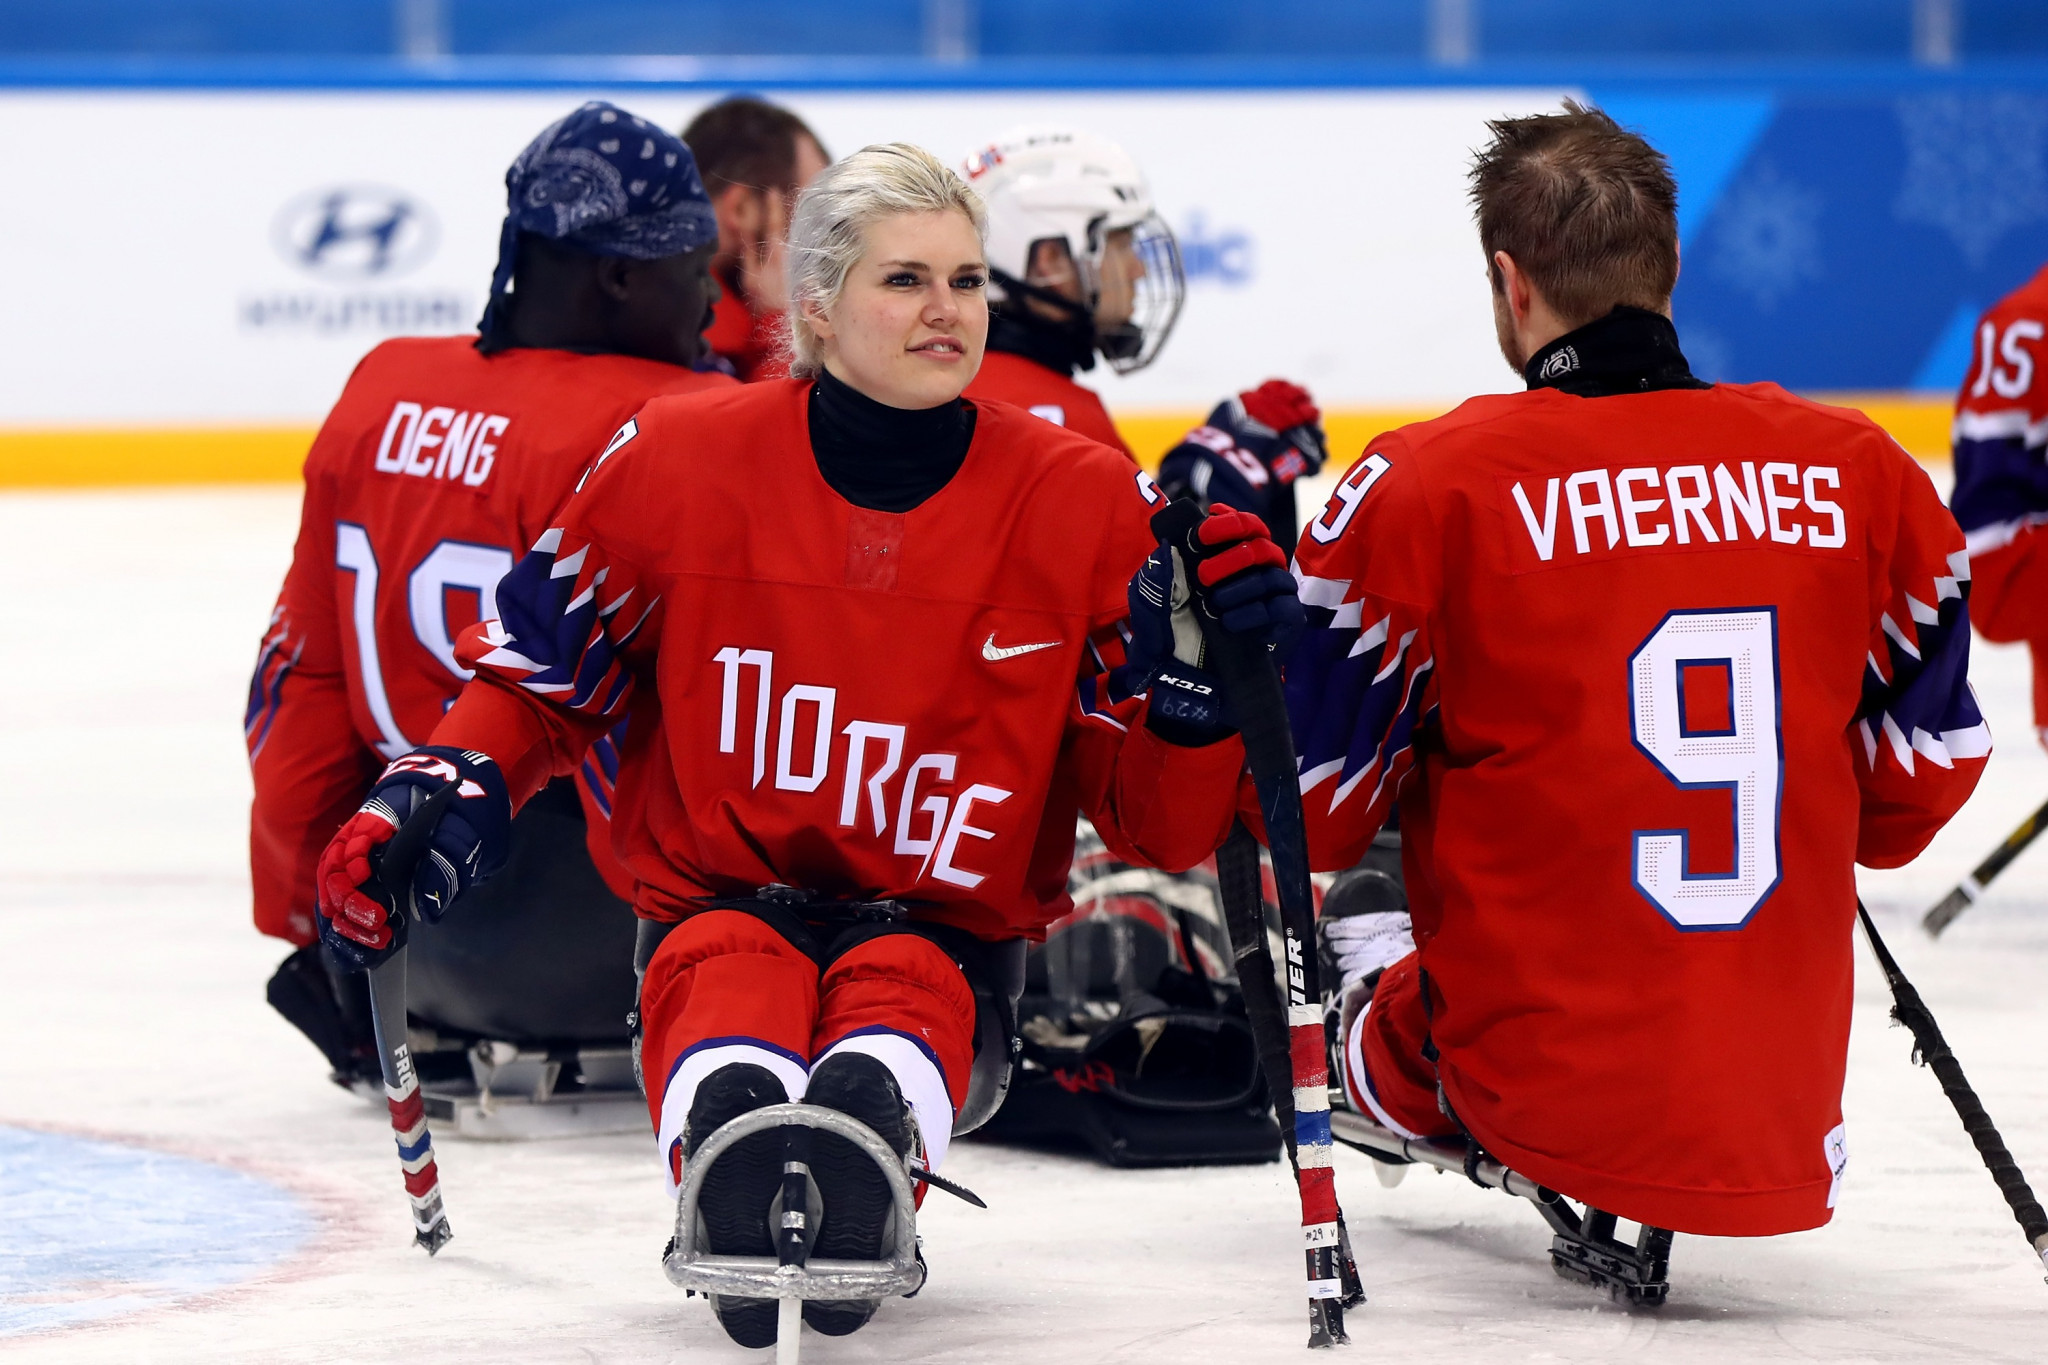 Lena Schroeder, the only women's player competing in the ice hockey tournament, helped Norway to a 3-1 win over Sweden in Group A ©Getty Images